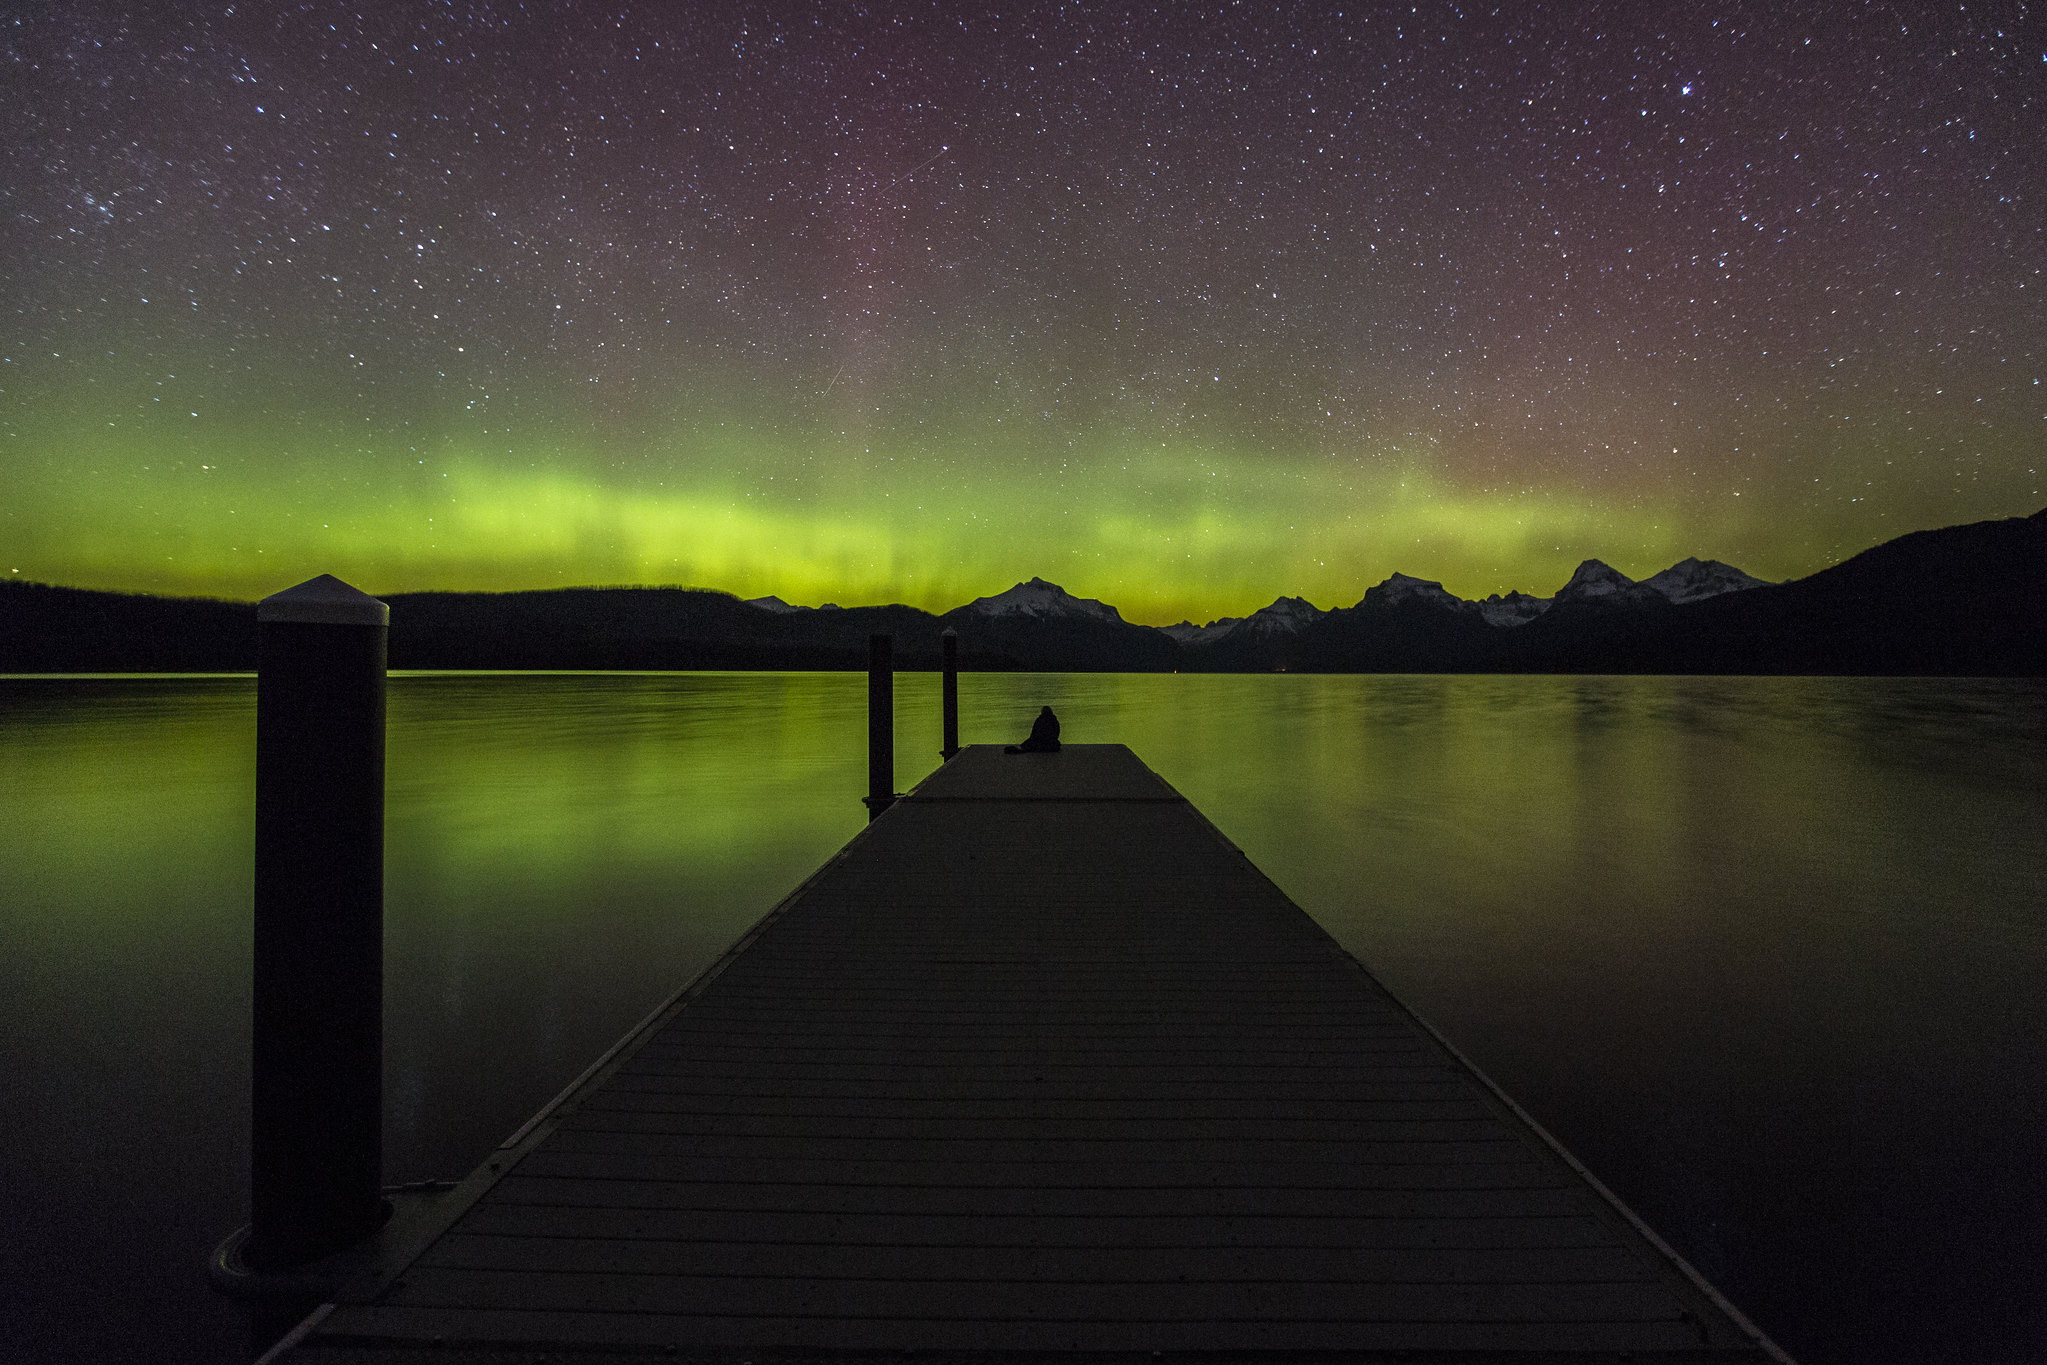 Person at end of dock watching northern lights in Glacier National Park